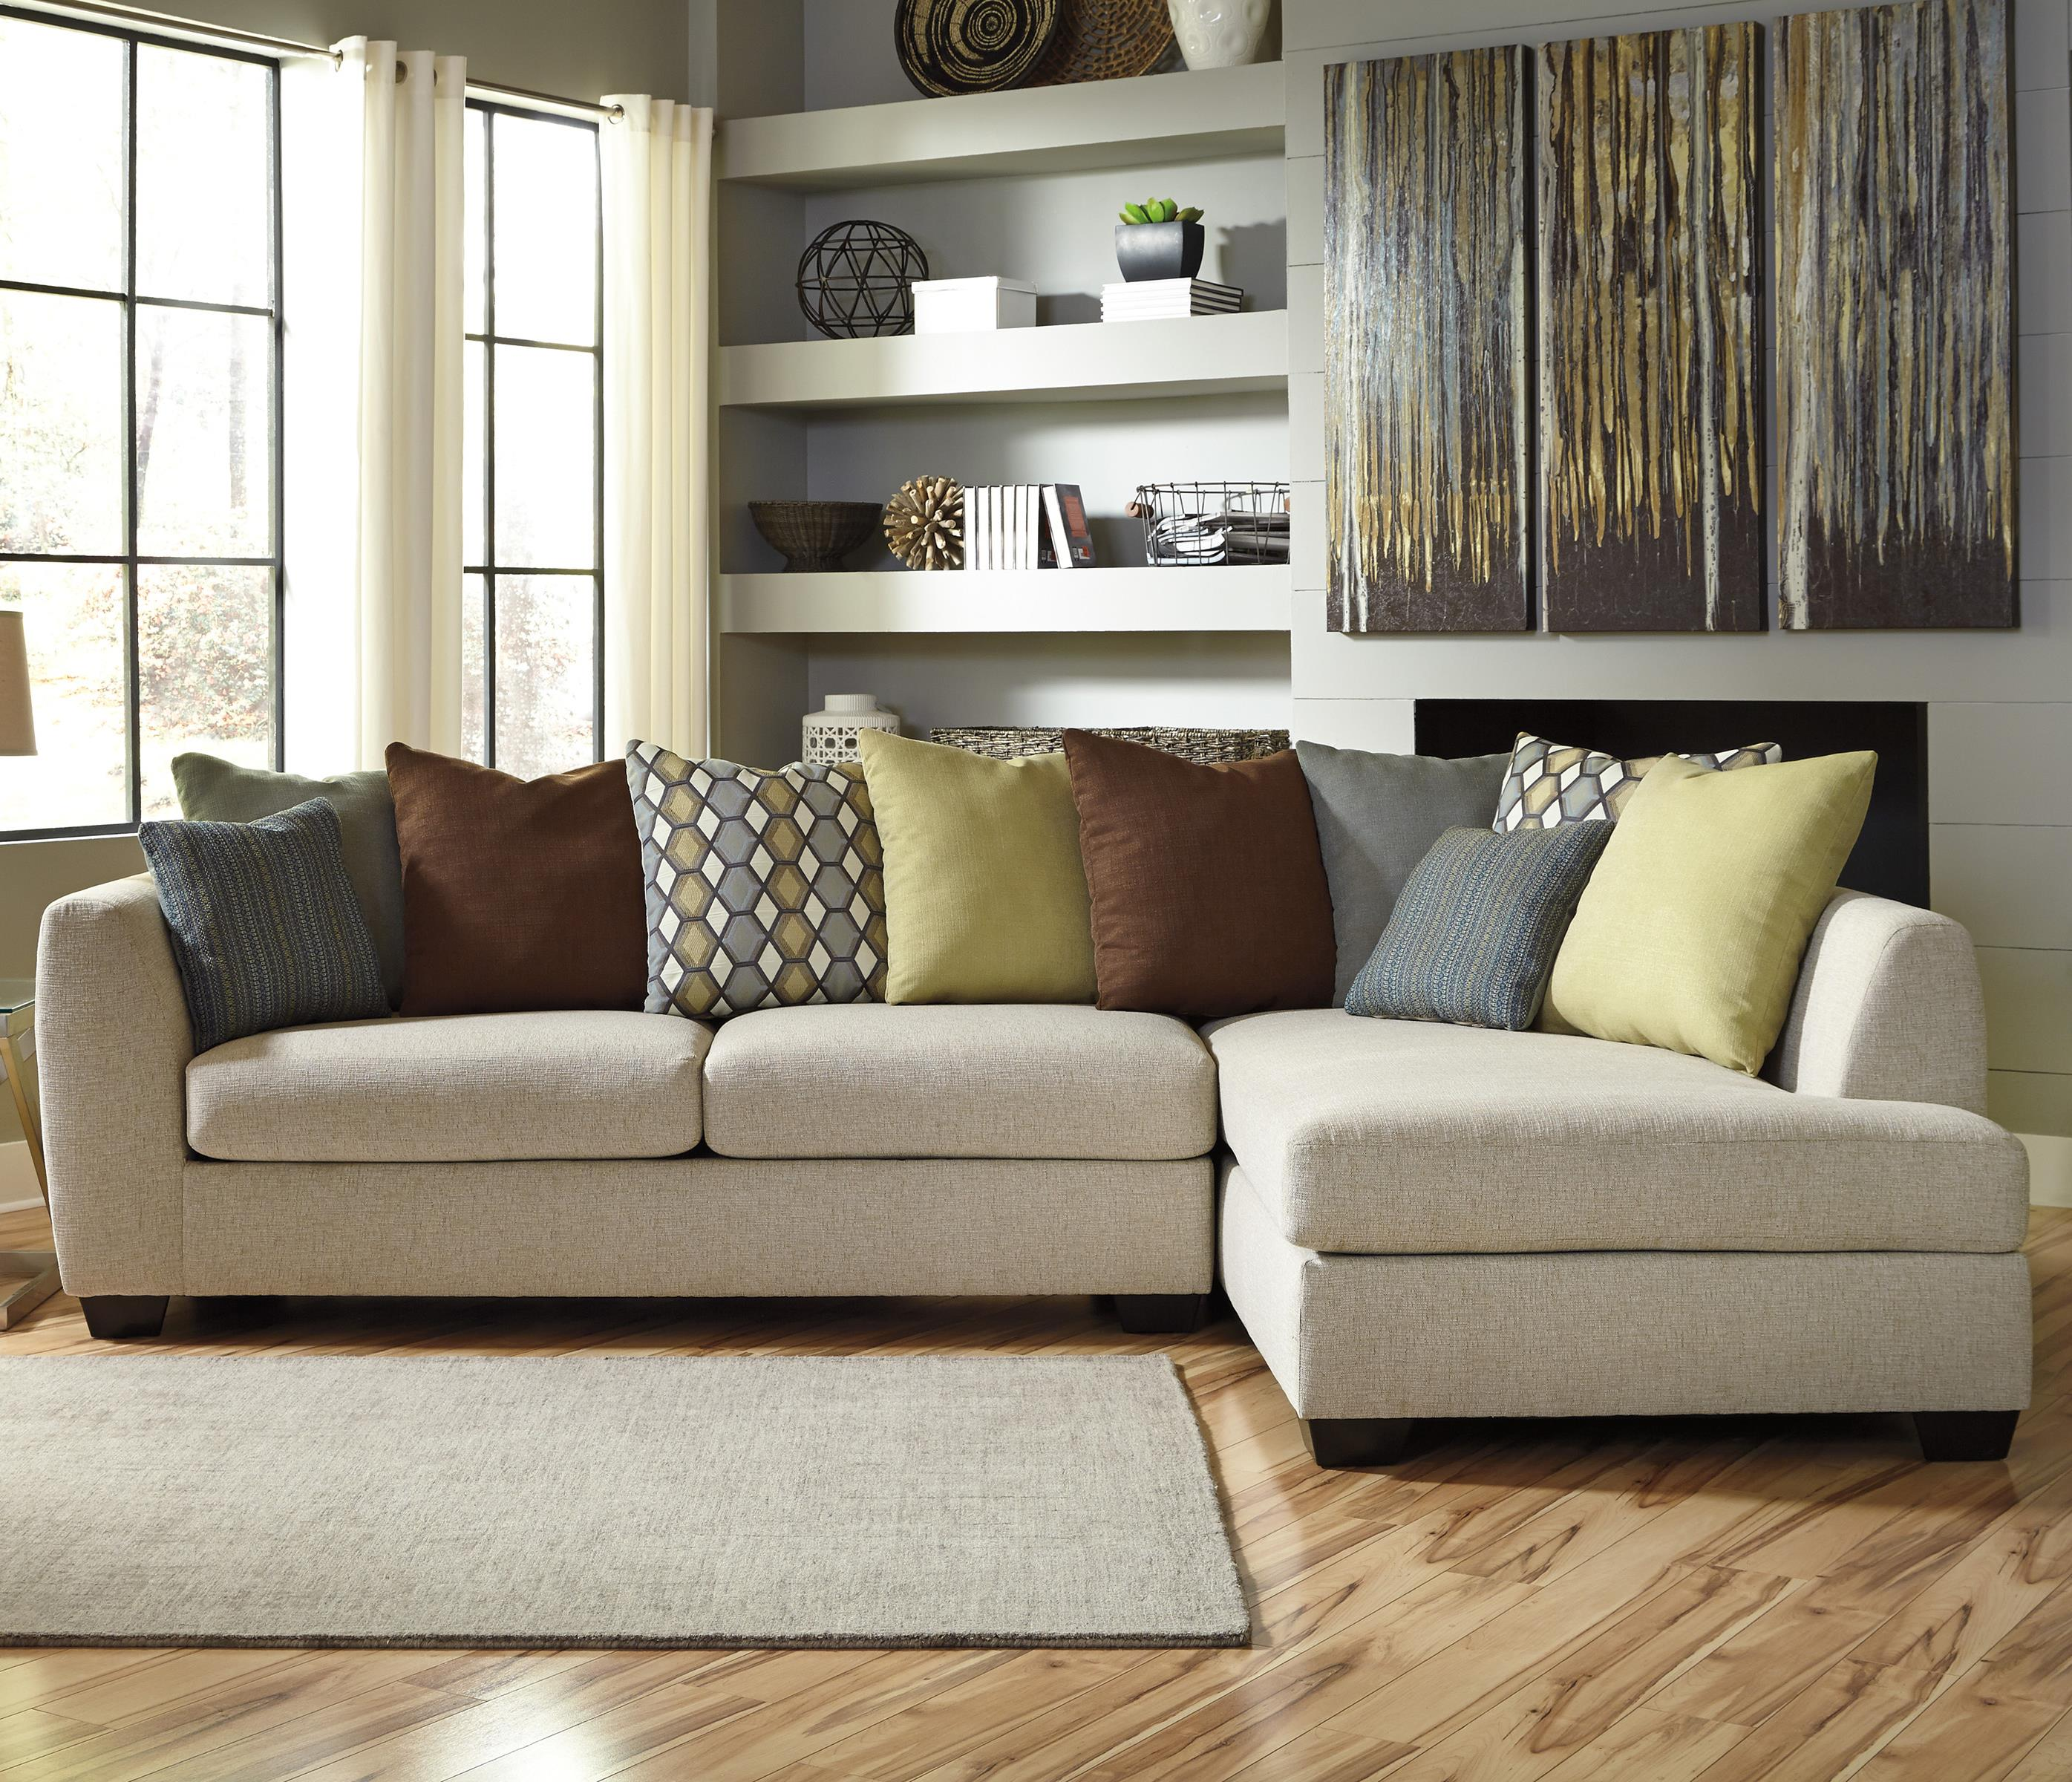 Benchcraft Casheral 2-Piece Sectional with Right Chaise - Item Number: 8290166+17